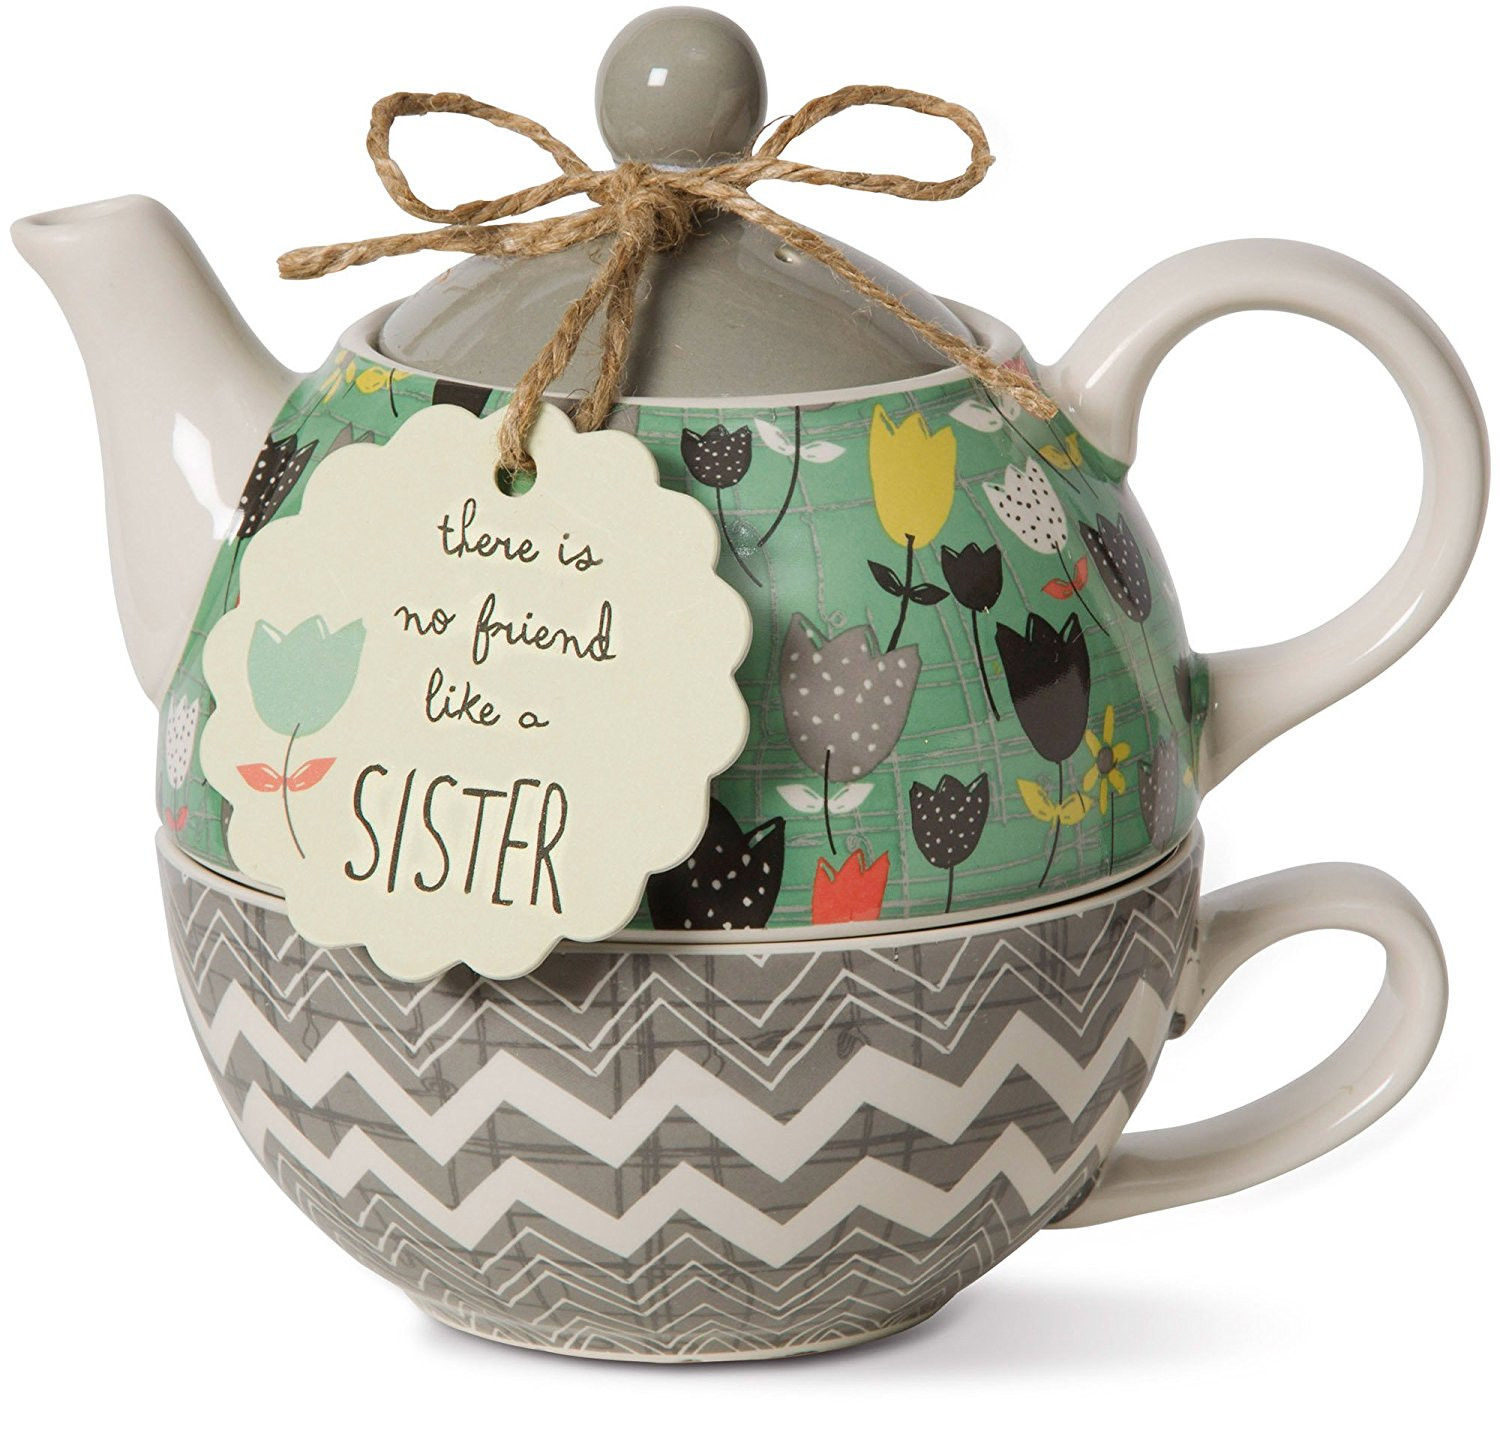 Sister Birthday Gifts Ideas  105 Perfect Birthday Gift Ideas for Sister